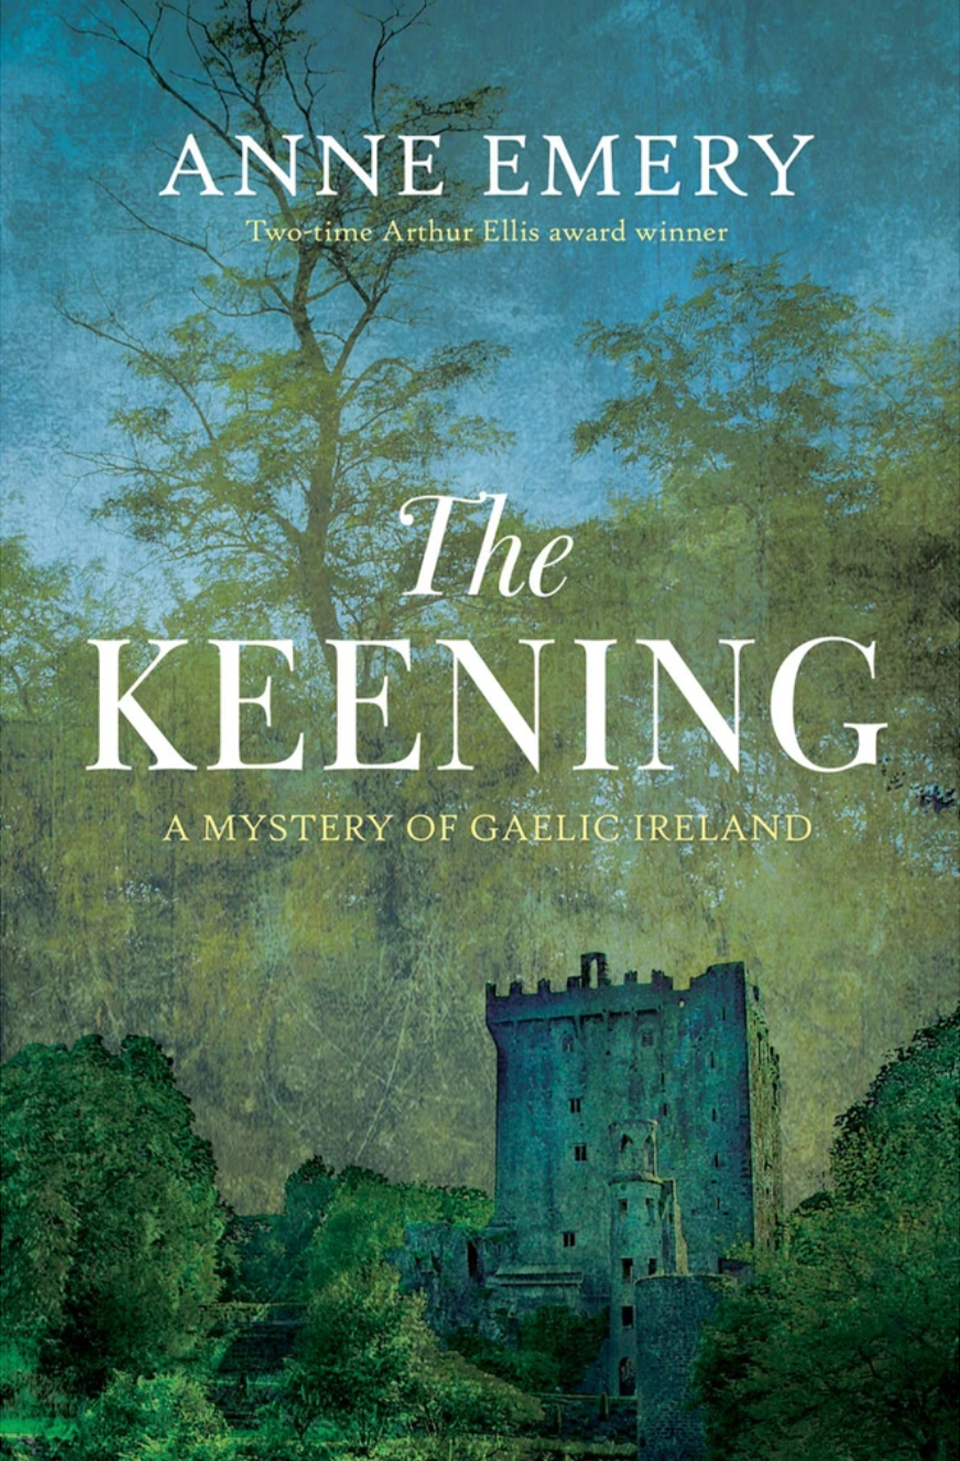 The Keening by Anne Emery